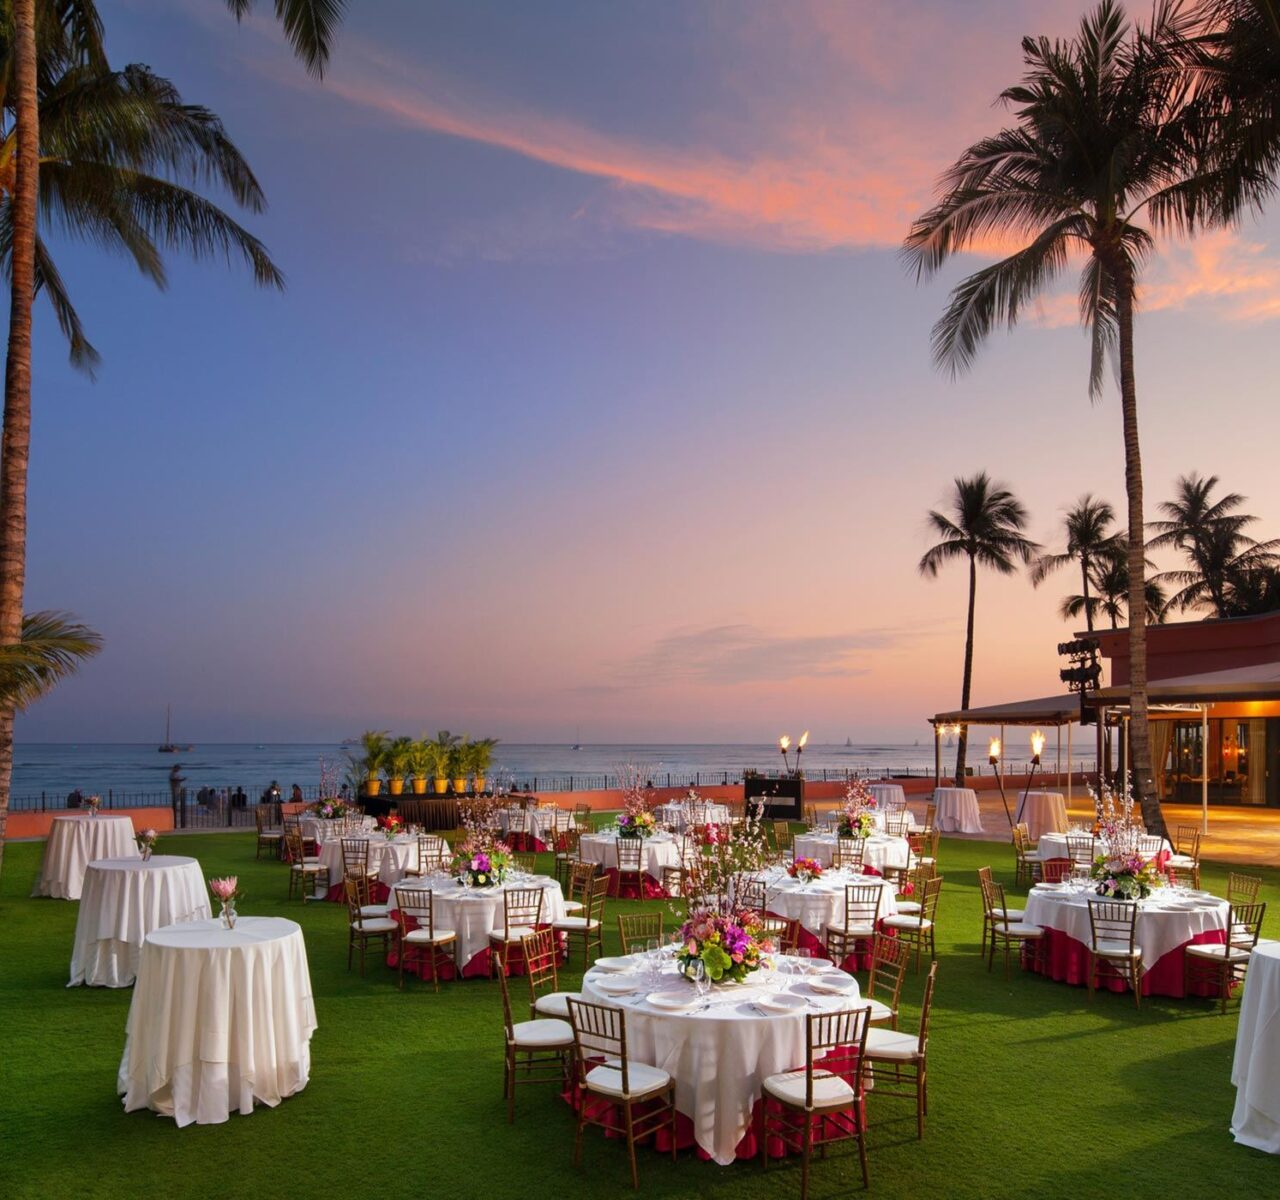 white tables setup on grass on ocean front at dusk